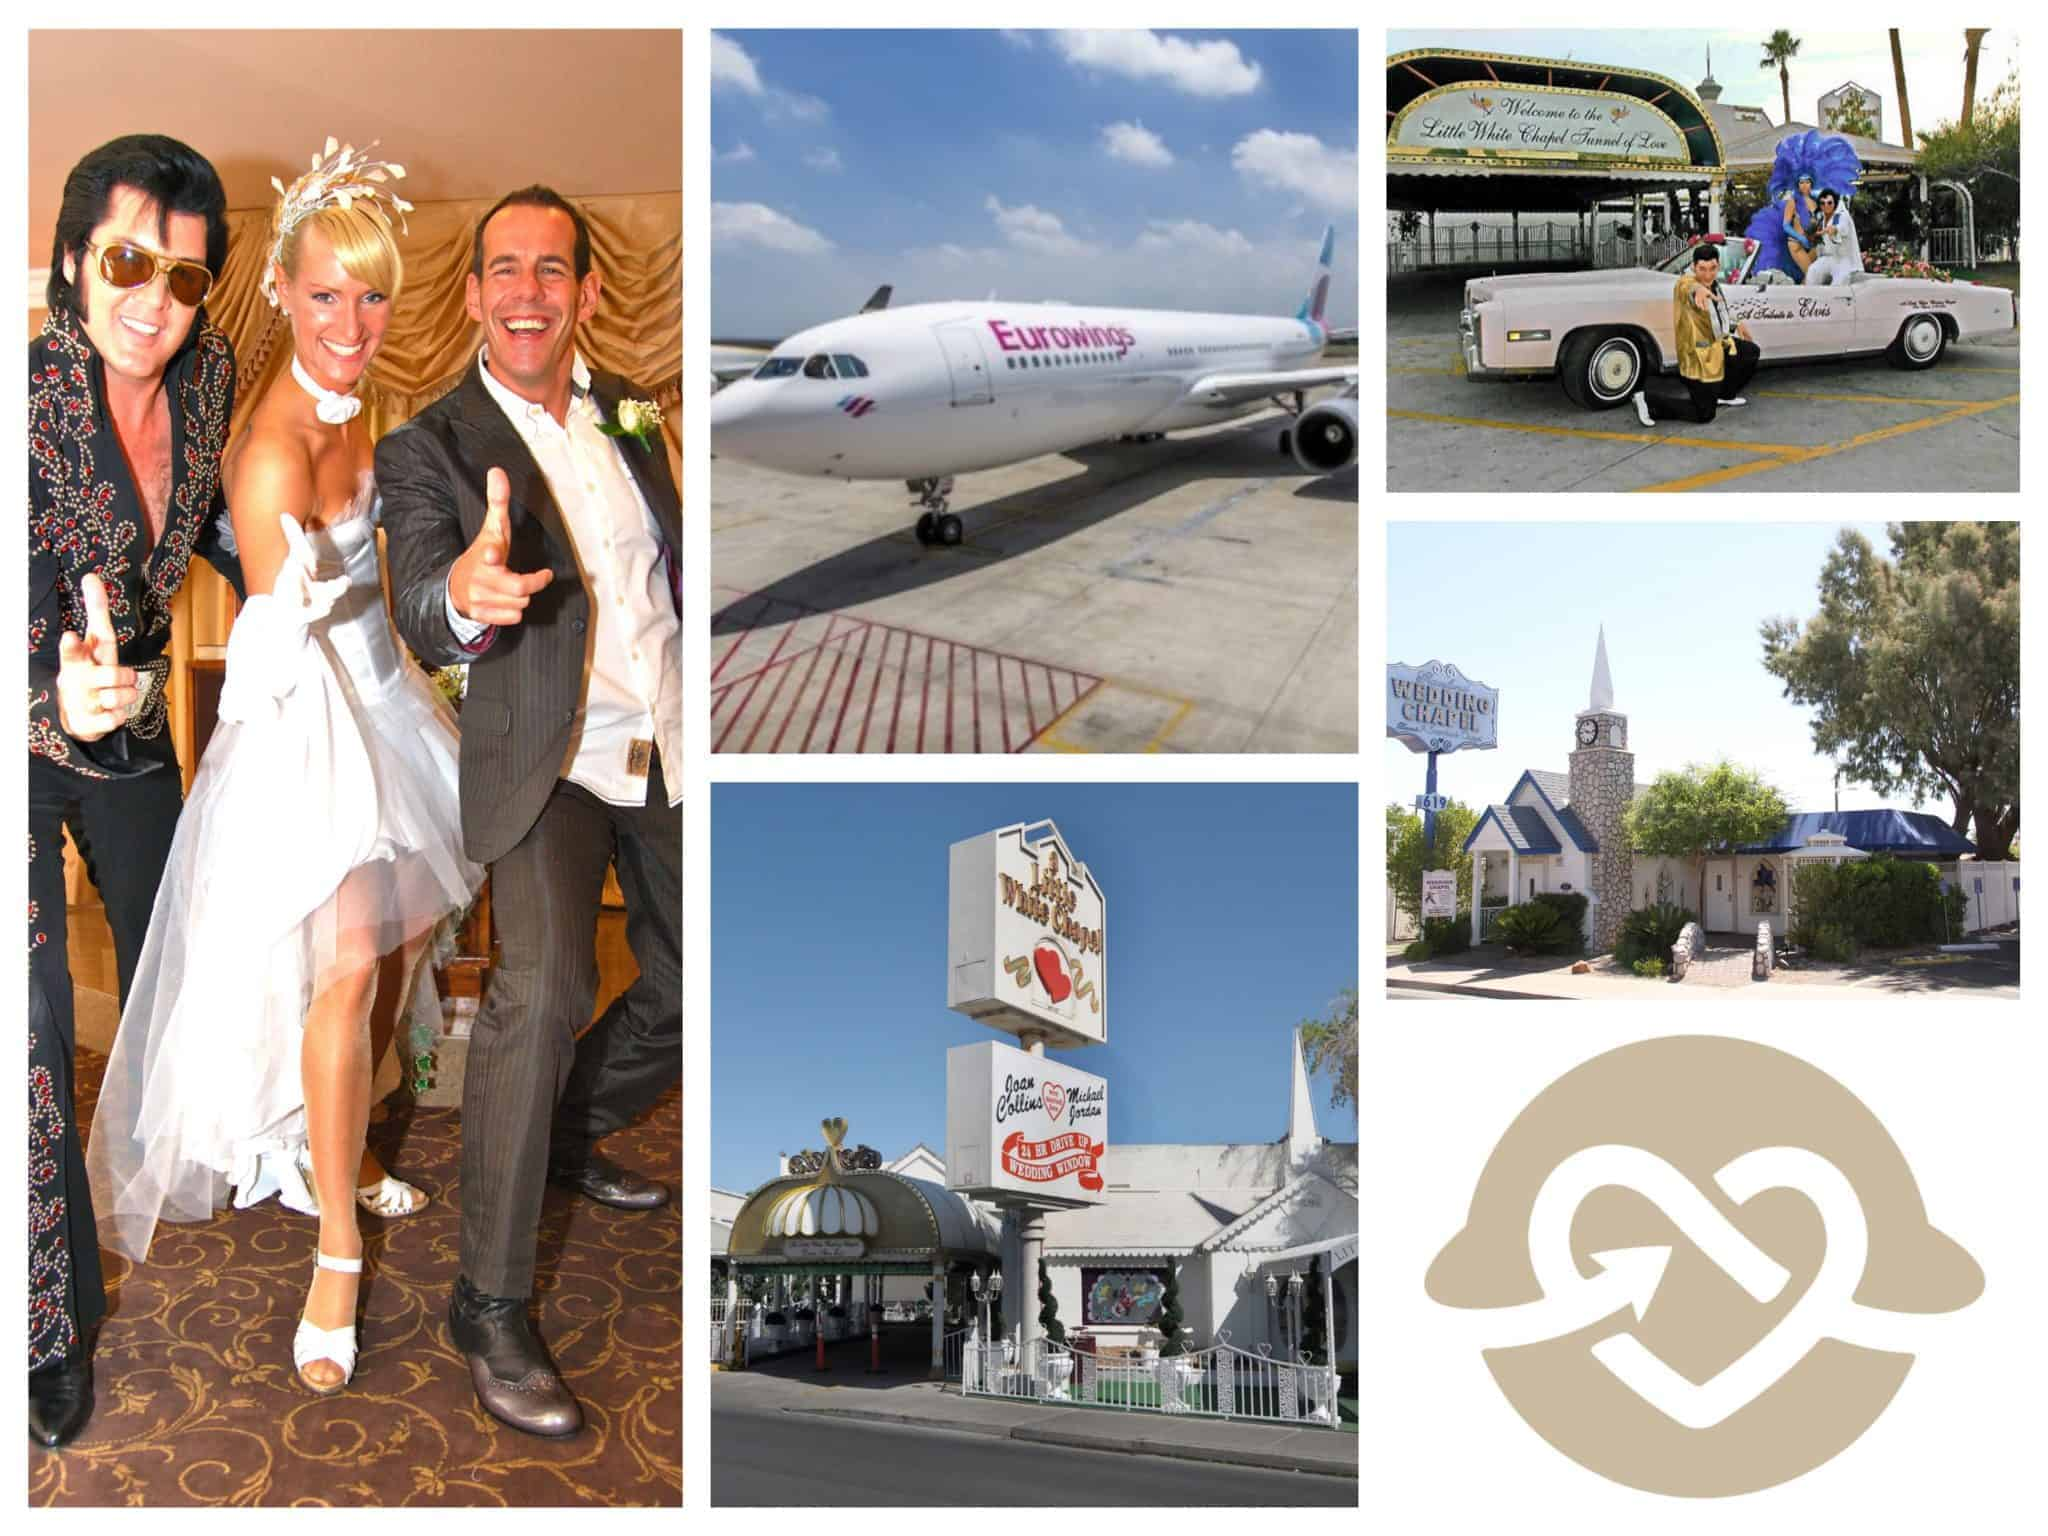 nonstop las vegas trouwen eurowings